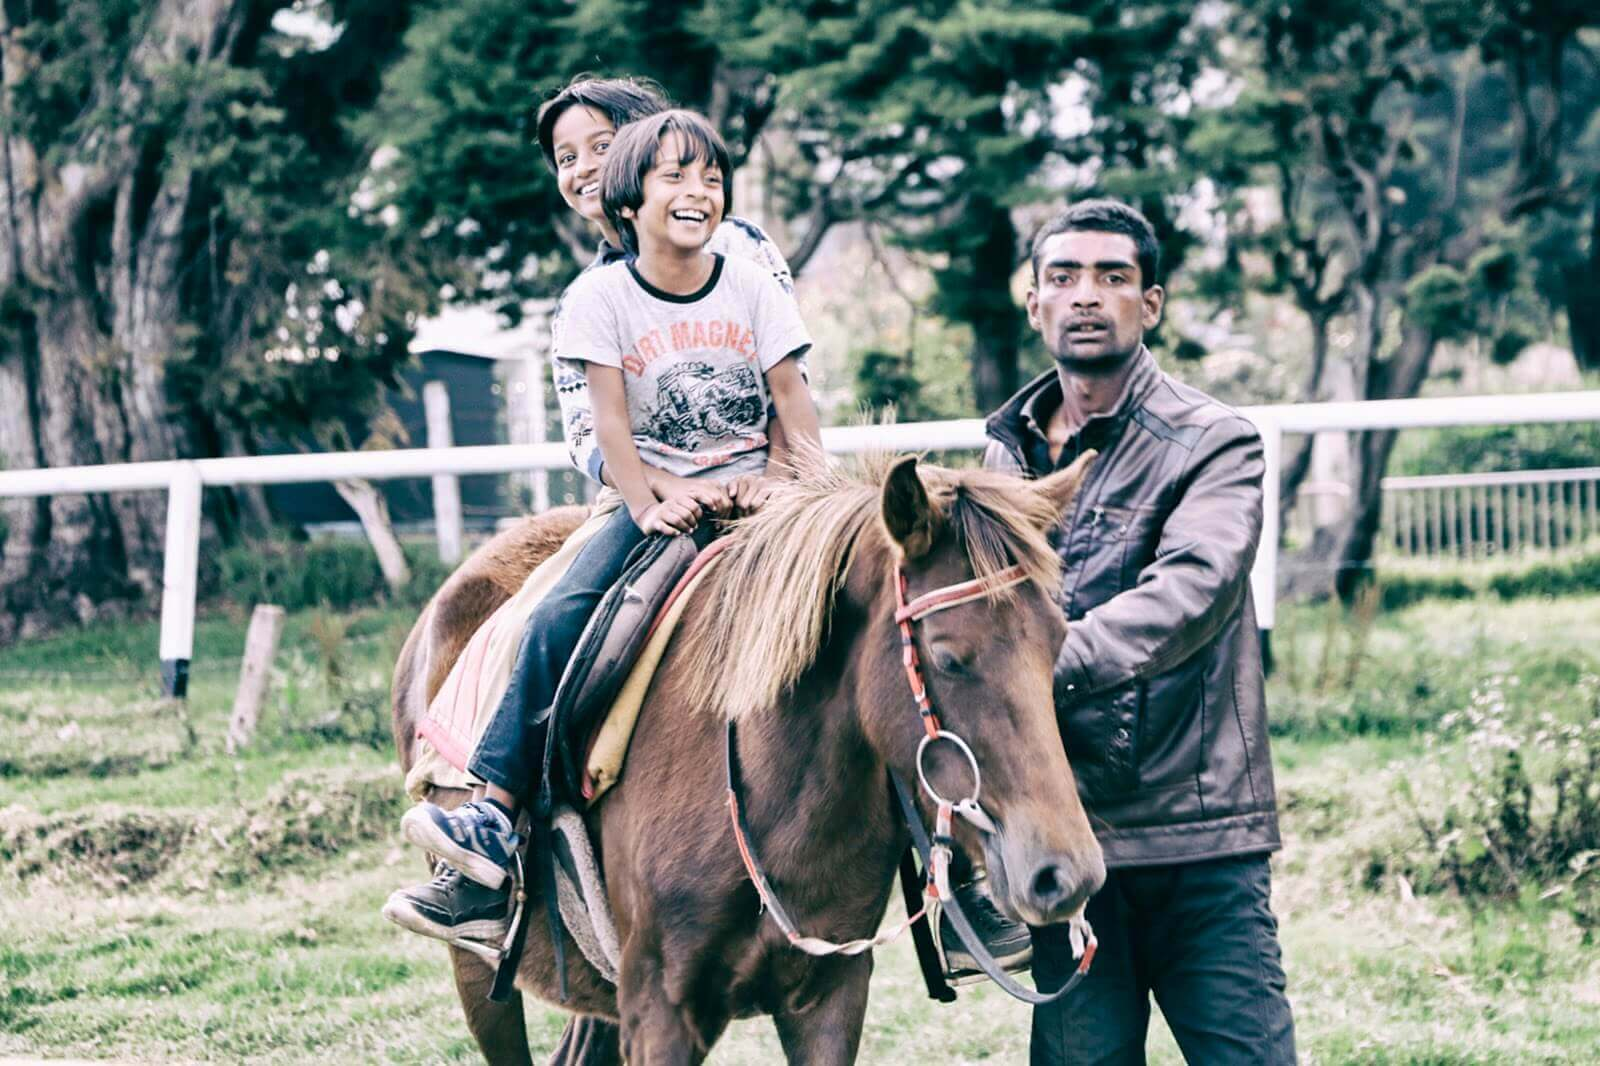 little boys riding horse with parent by side